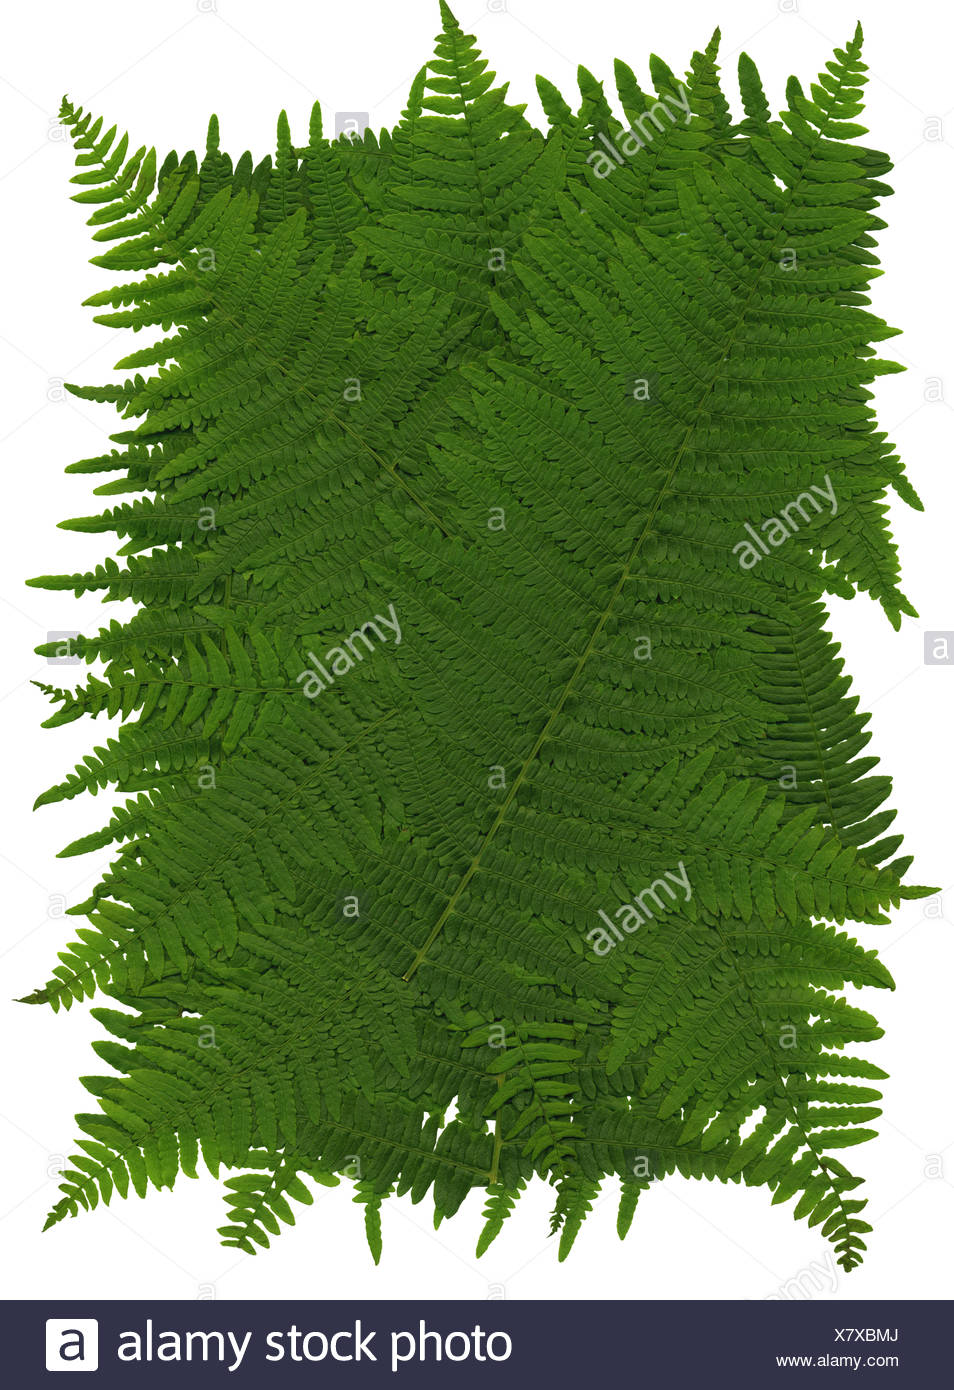 Texture of leaves of worm fern - Stock Image